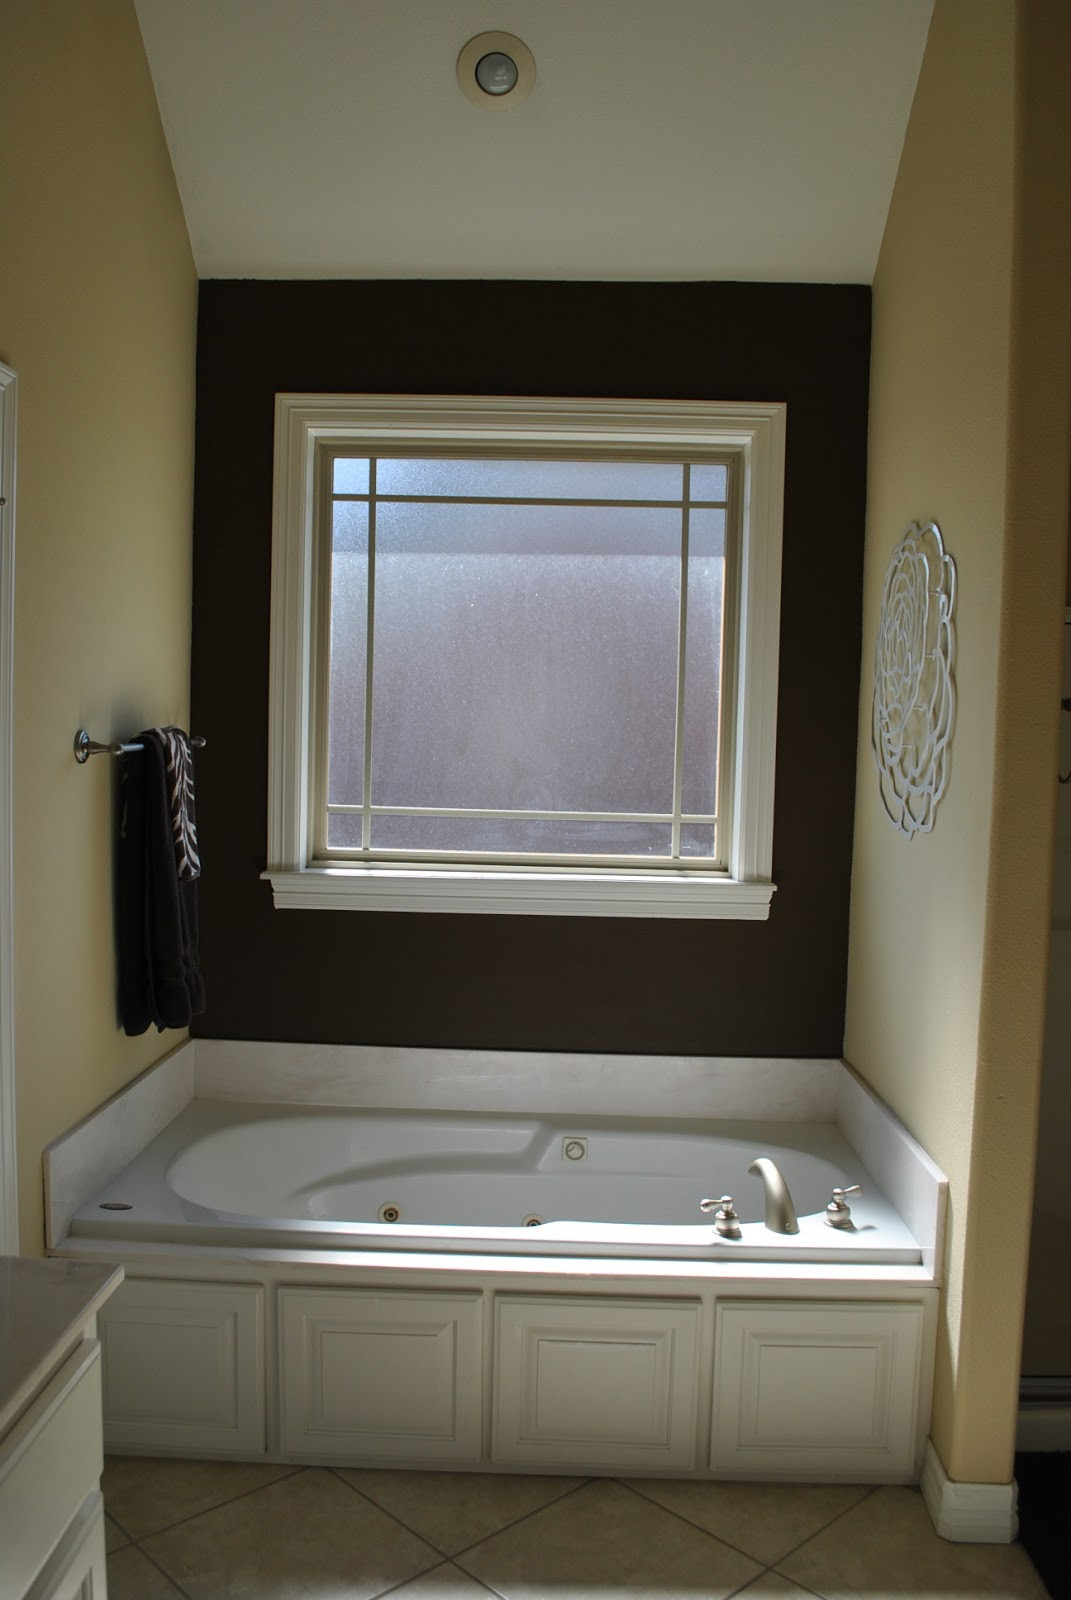 Best ideas about Accent Walls In Bathrooms . Save or Pin The Francis Family Master Bathroom Accent Wall Now.